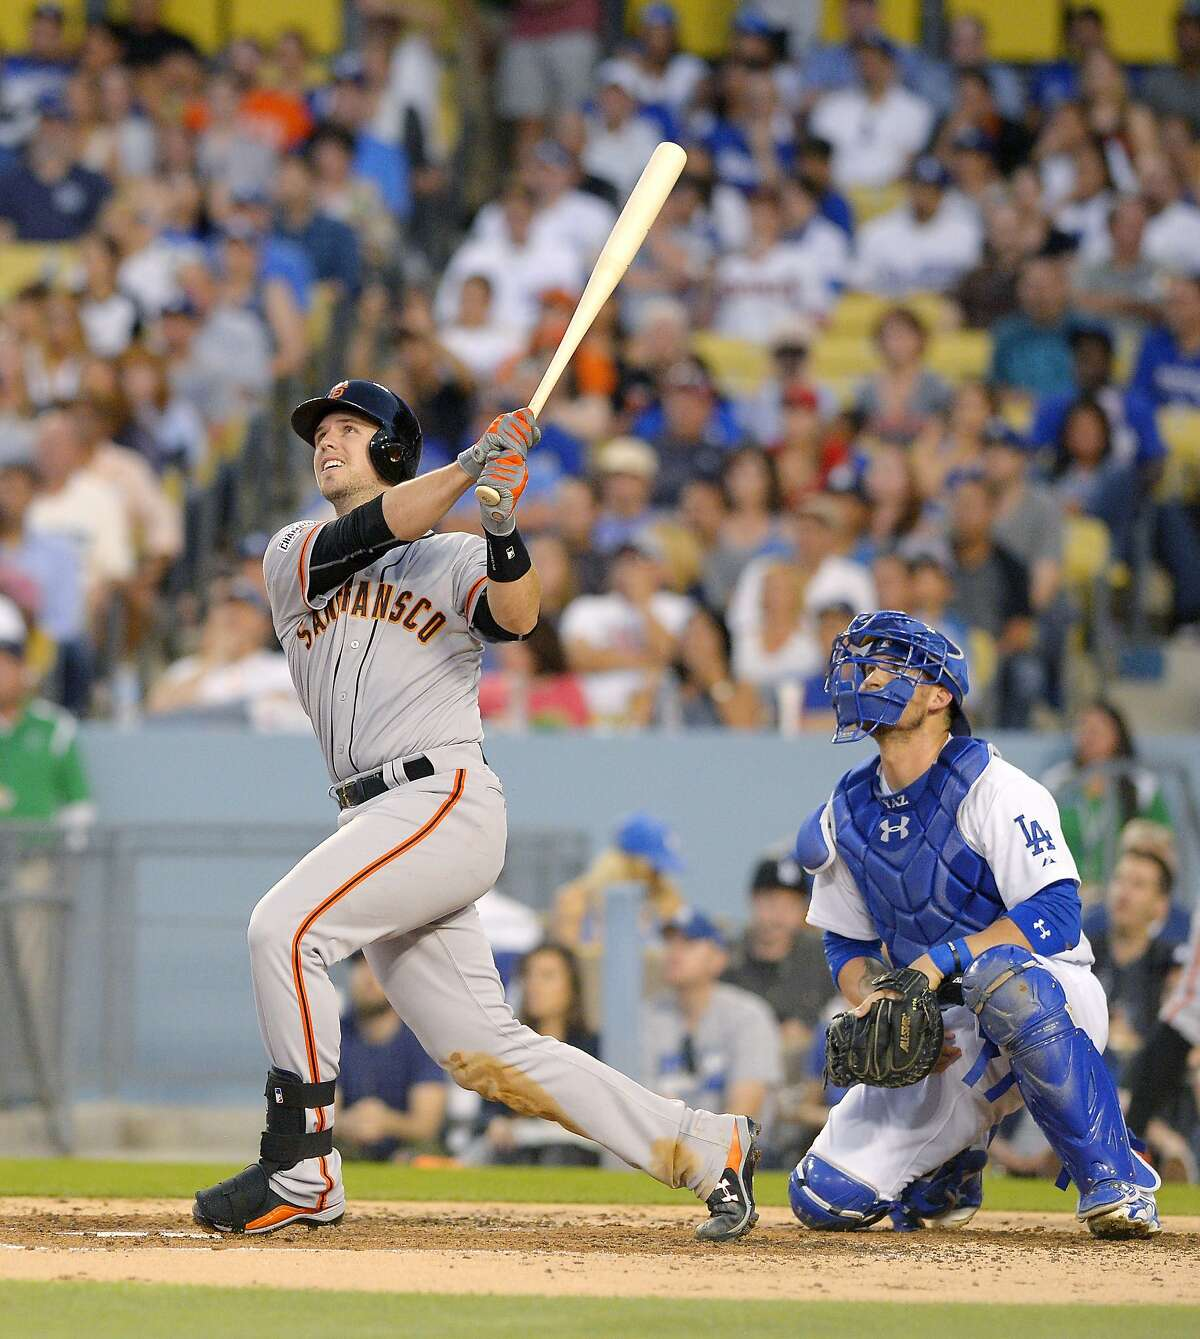 San Francisco Giants' Buster Posey, left, hits a grand slam as Los Angeles Dodgers catcher Yasmani Grandal, watches during the third inning of a baseball game, Friday, June 19, 2015, in Los Angeles.